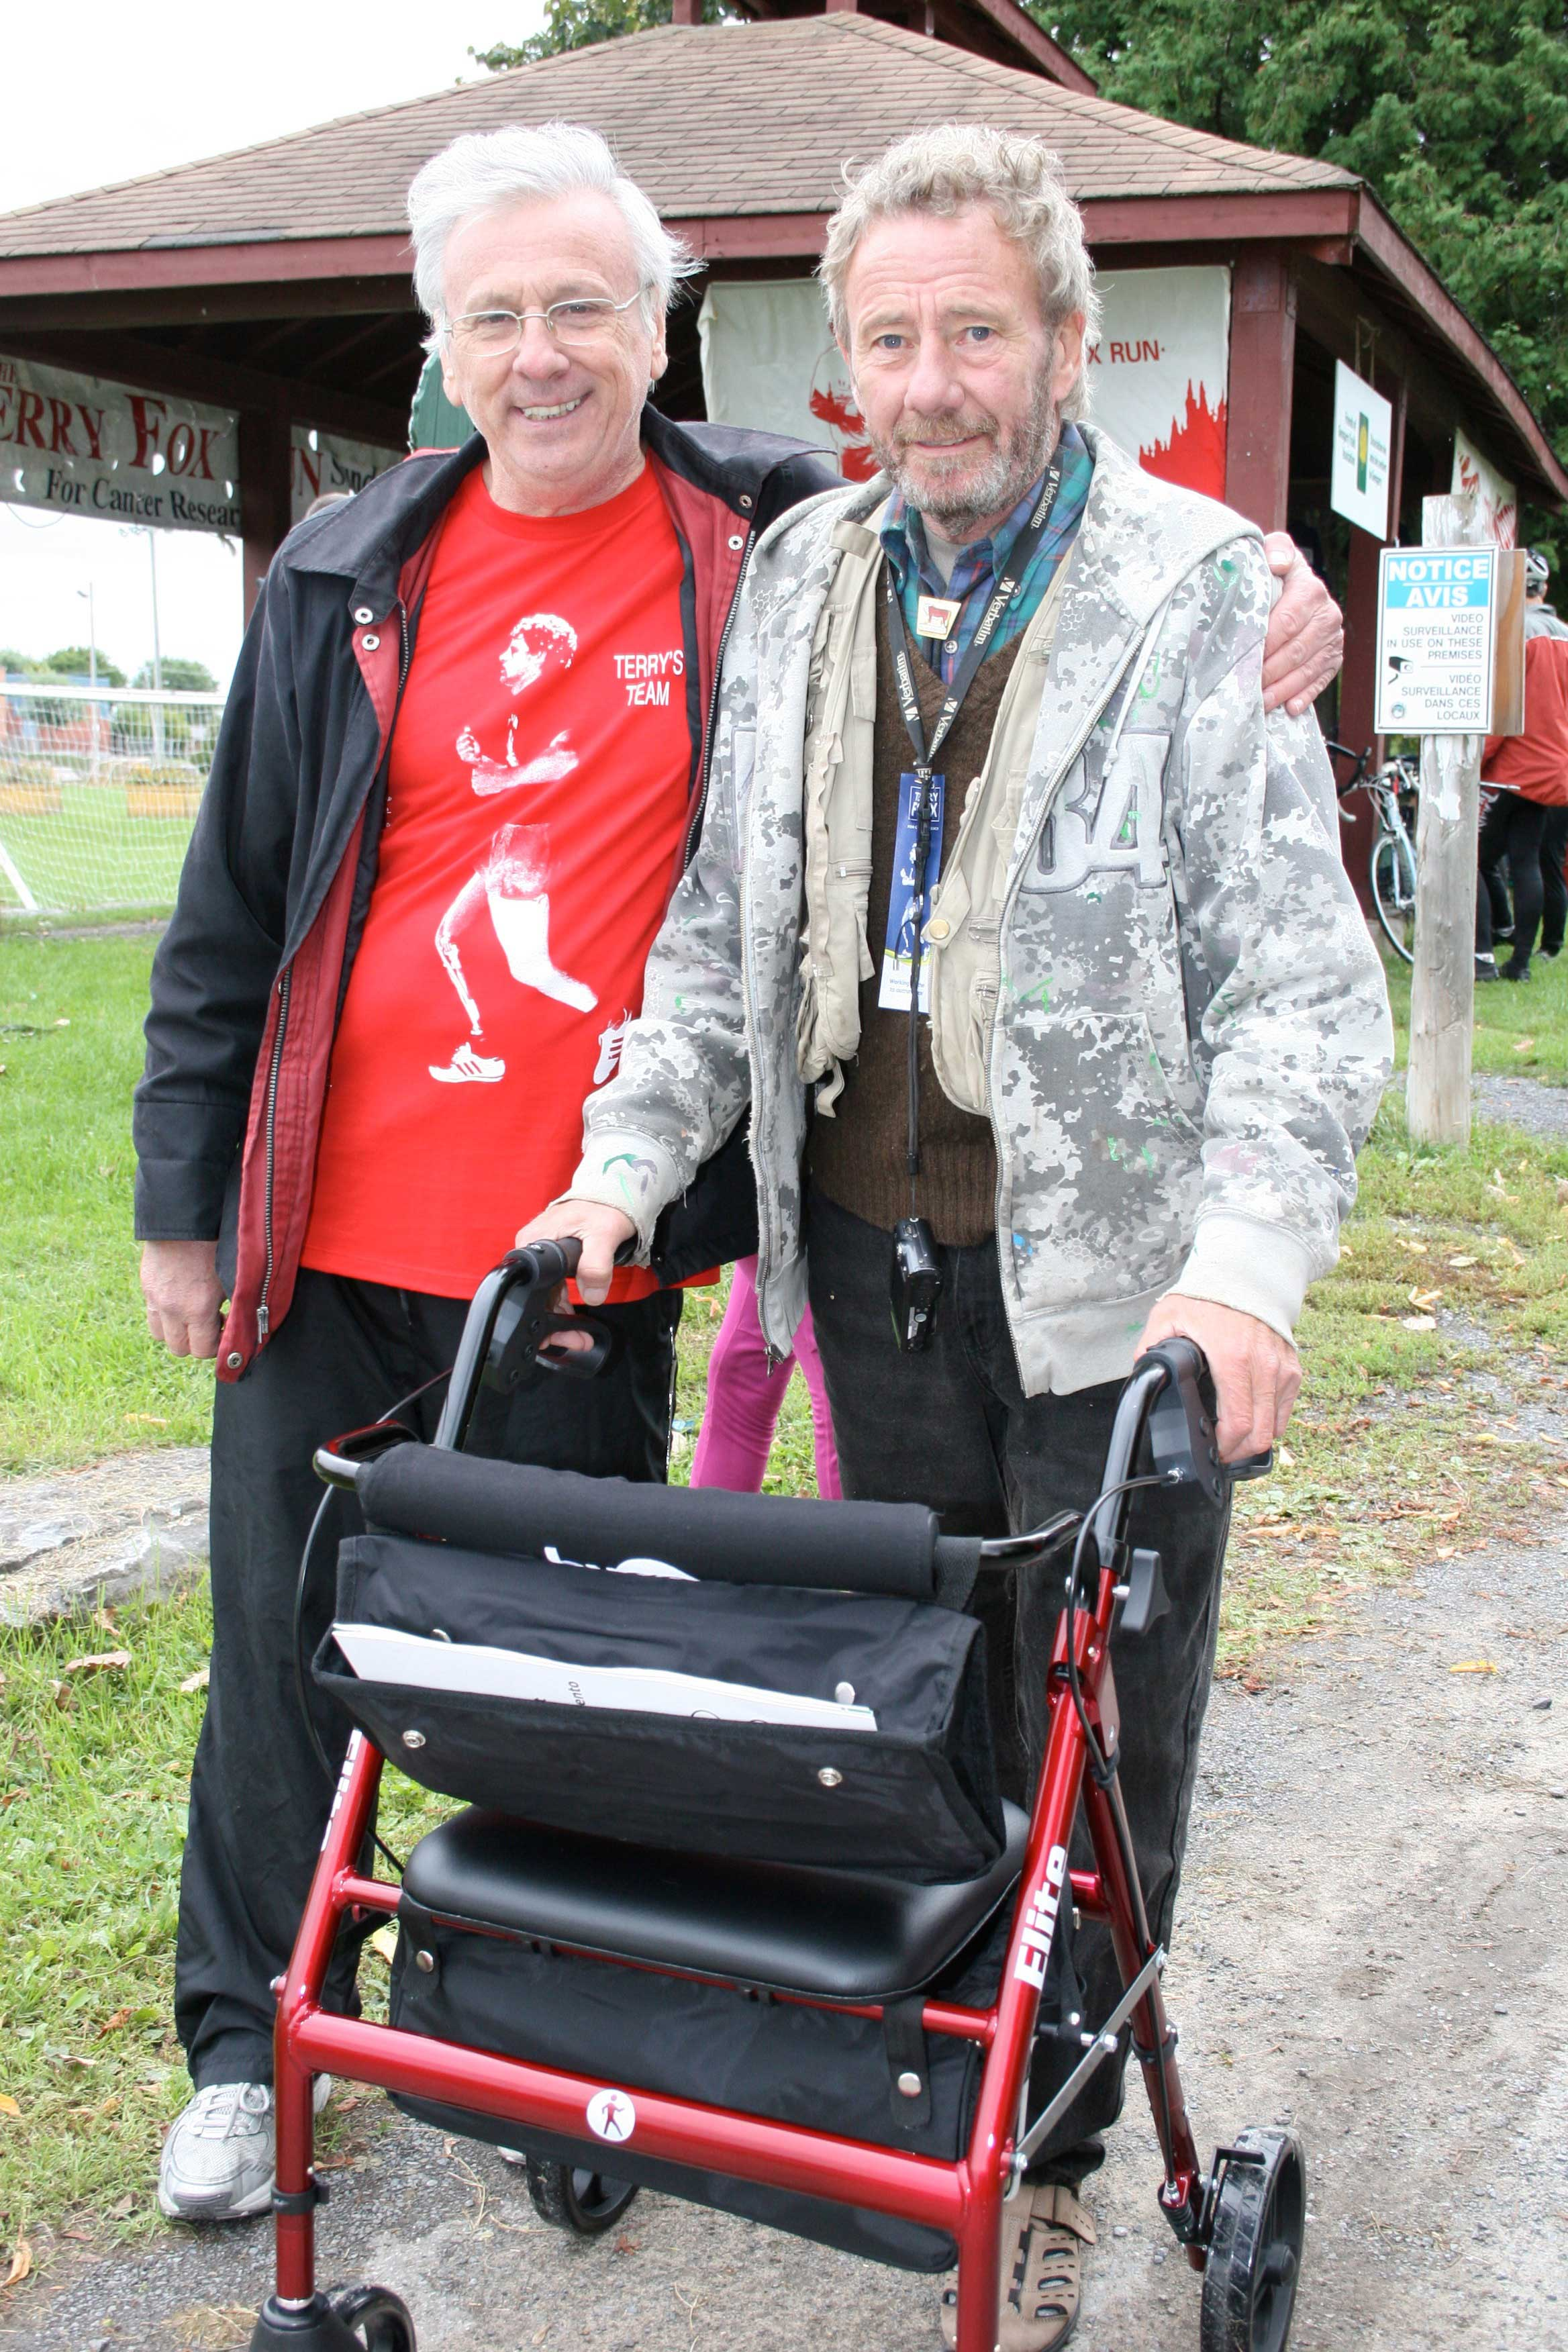 Bob Hardy giving a Hugo Elite to Michael Cartwright at the 2014 Terry Fox Run in Alexandria, Ontario